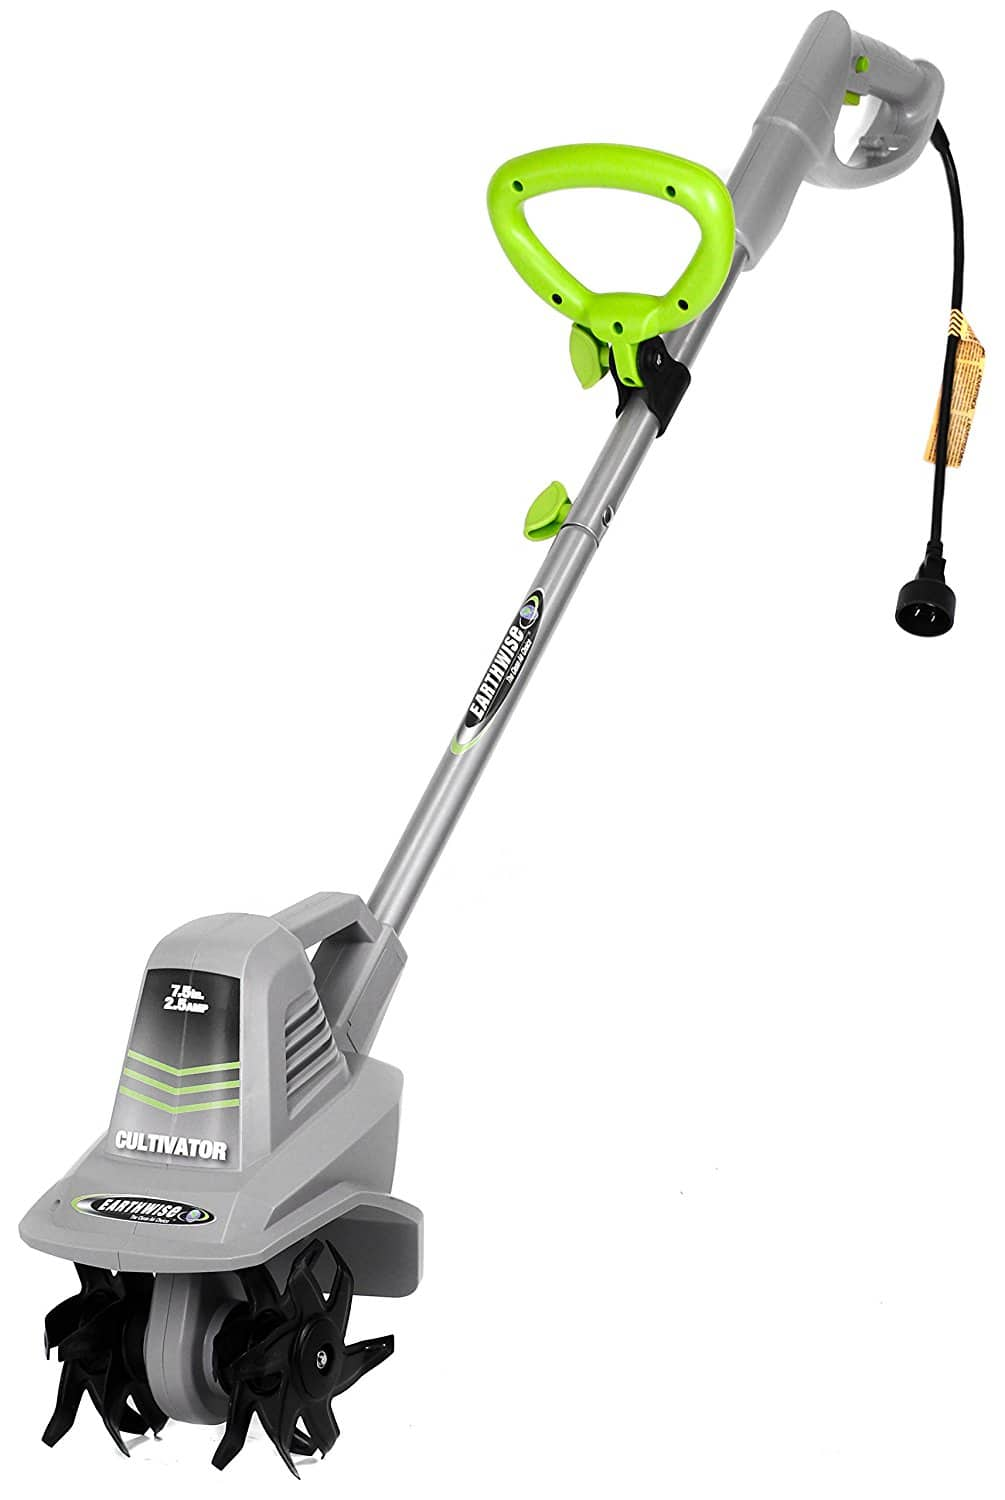 Earthwise TC70025 7.5-Inch 2.5-Amp Corded Electric Tiller/Cultivator $63.99 + FS